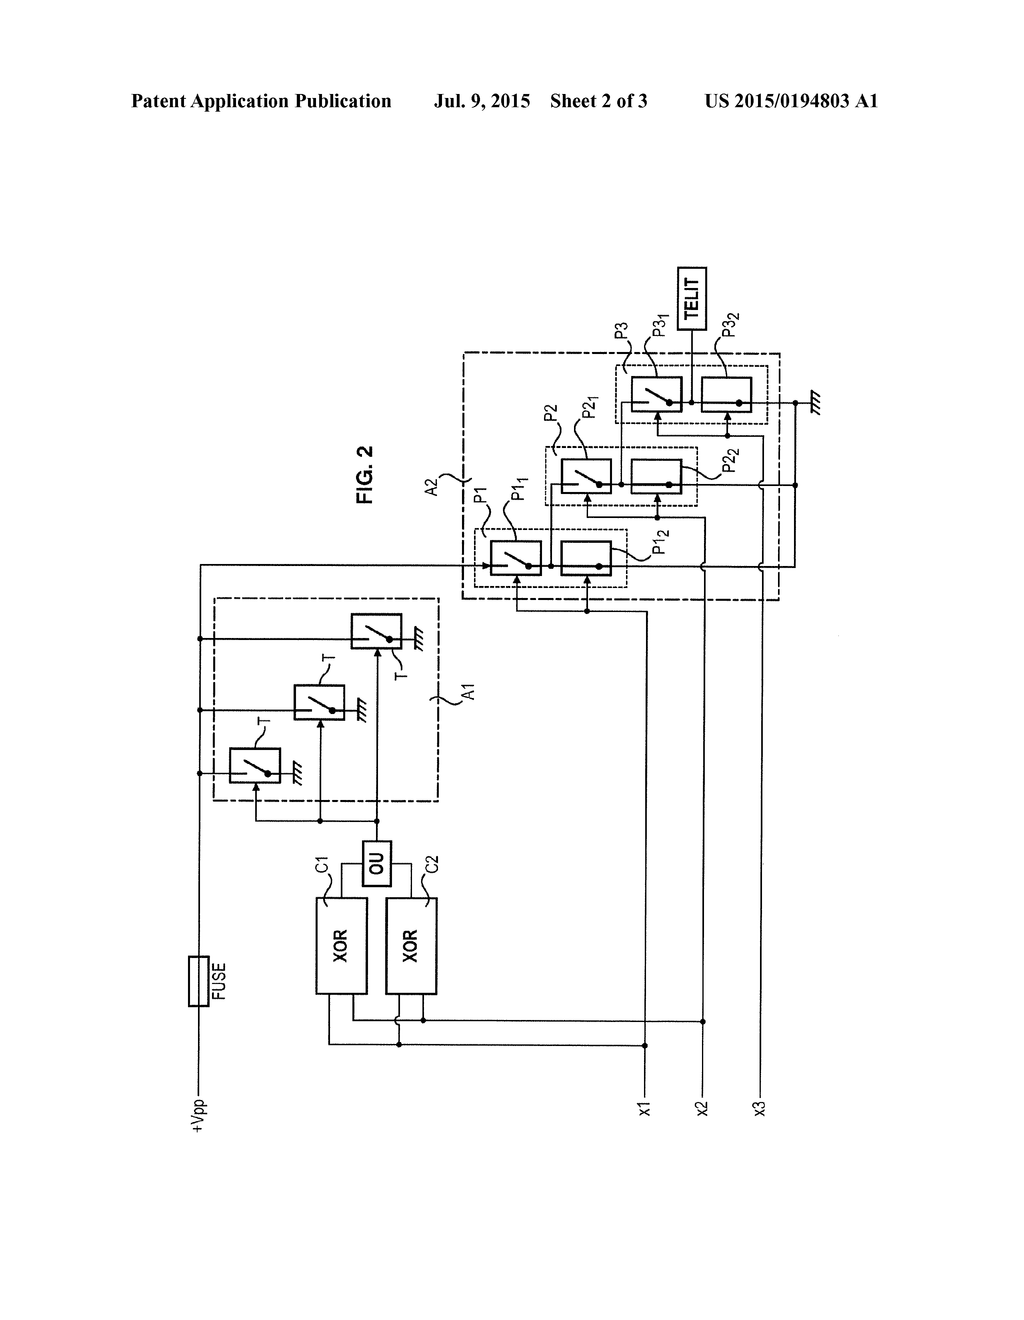 Electrical Circuit For Cutting Off An Electric Power Supply Draw A Logic Diagram Comprising Transistors And Fuses Having Redundant Schematic Image 03